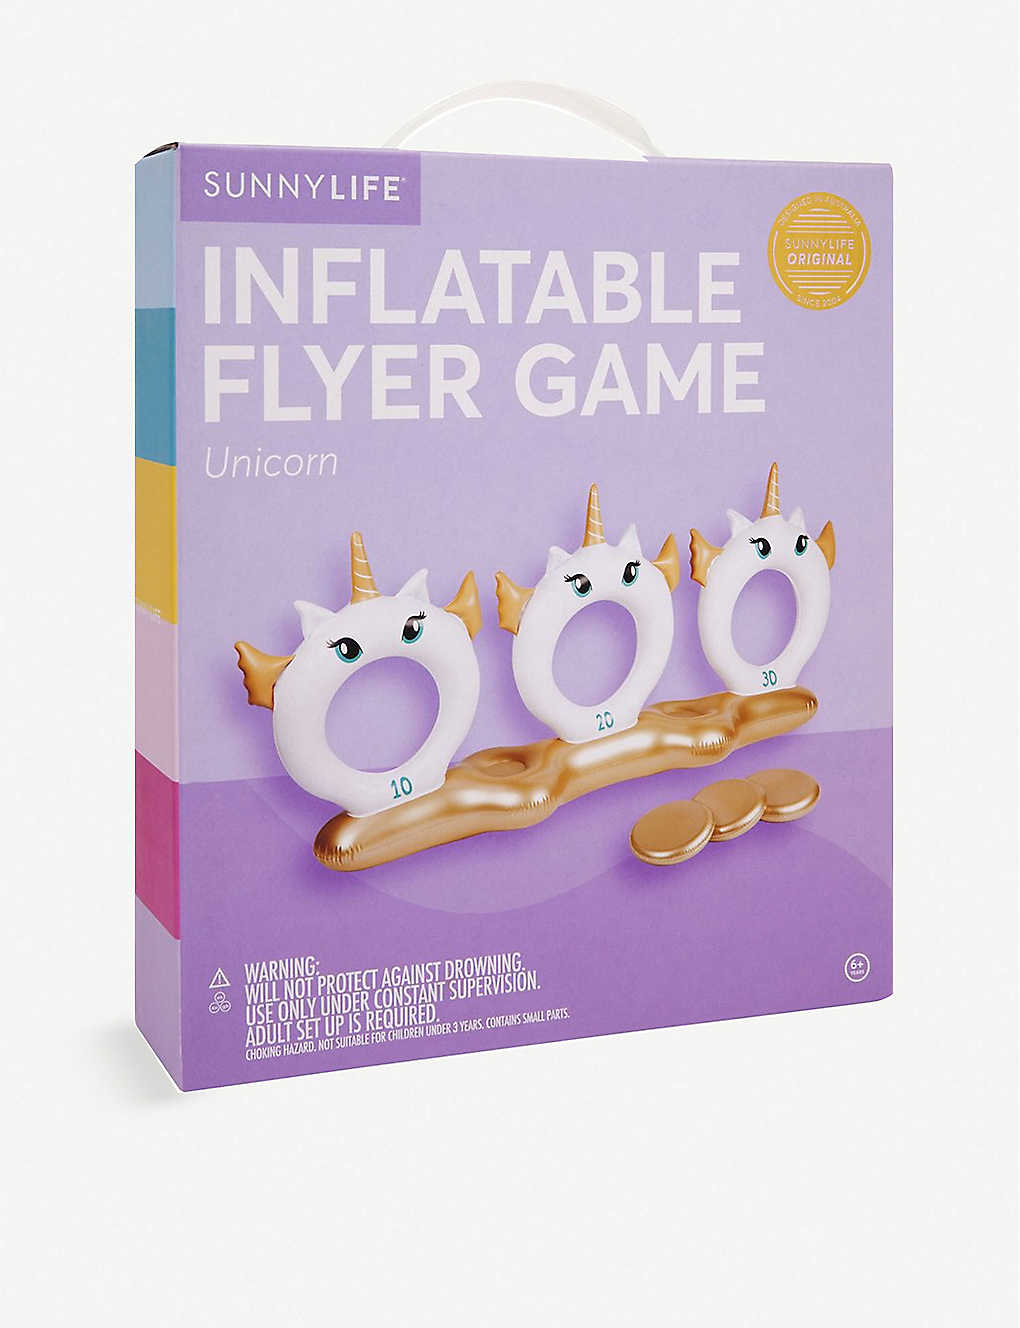 SUNNYLIFE: Unicorn Inflatable Flyer Game